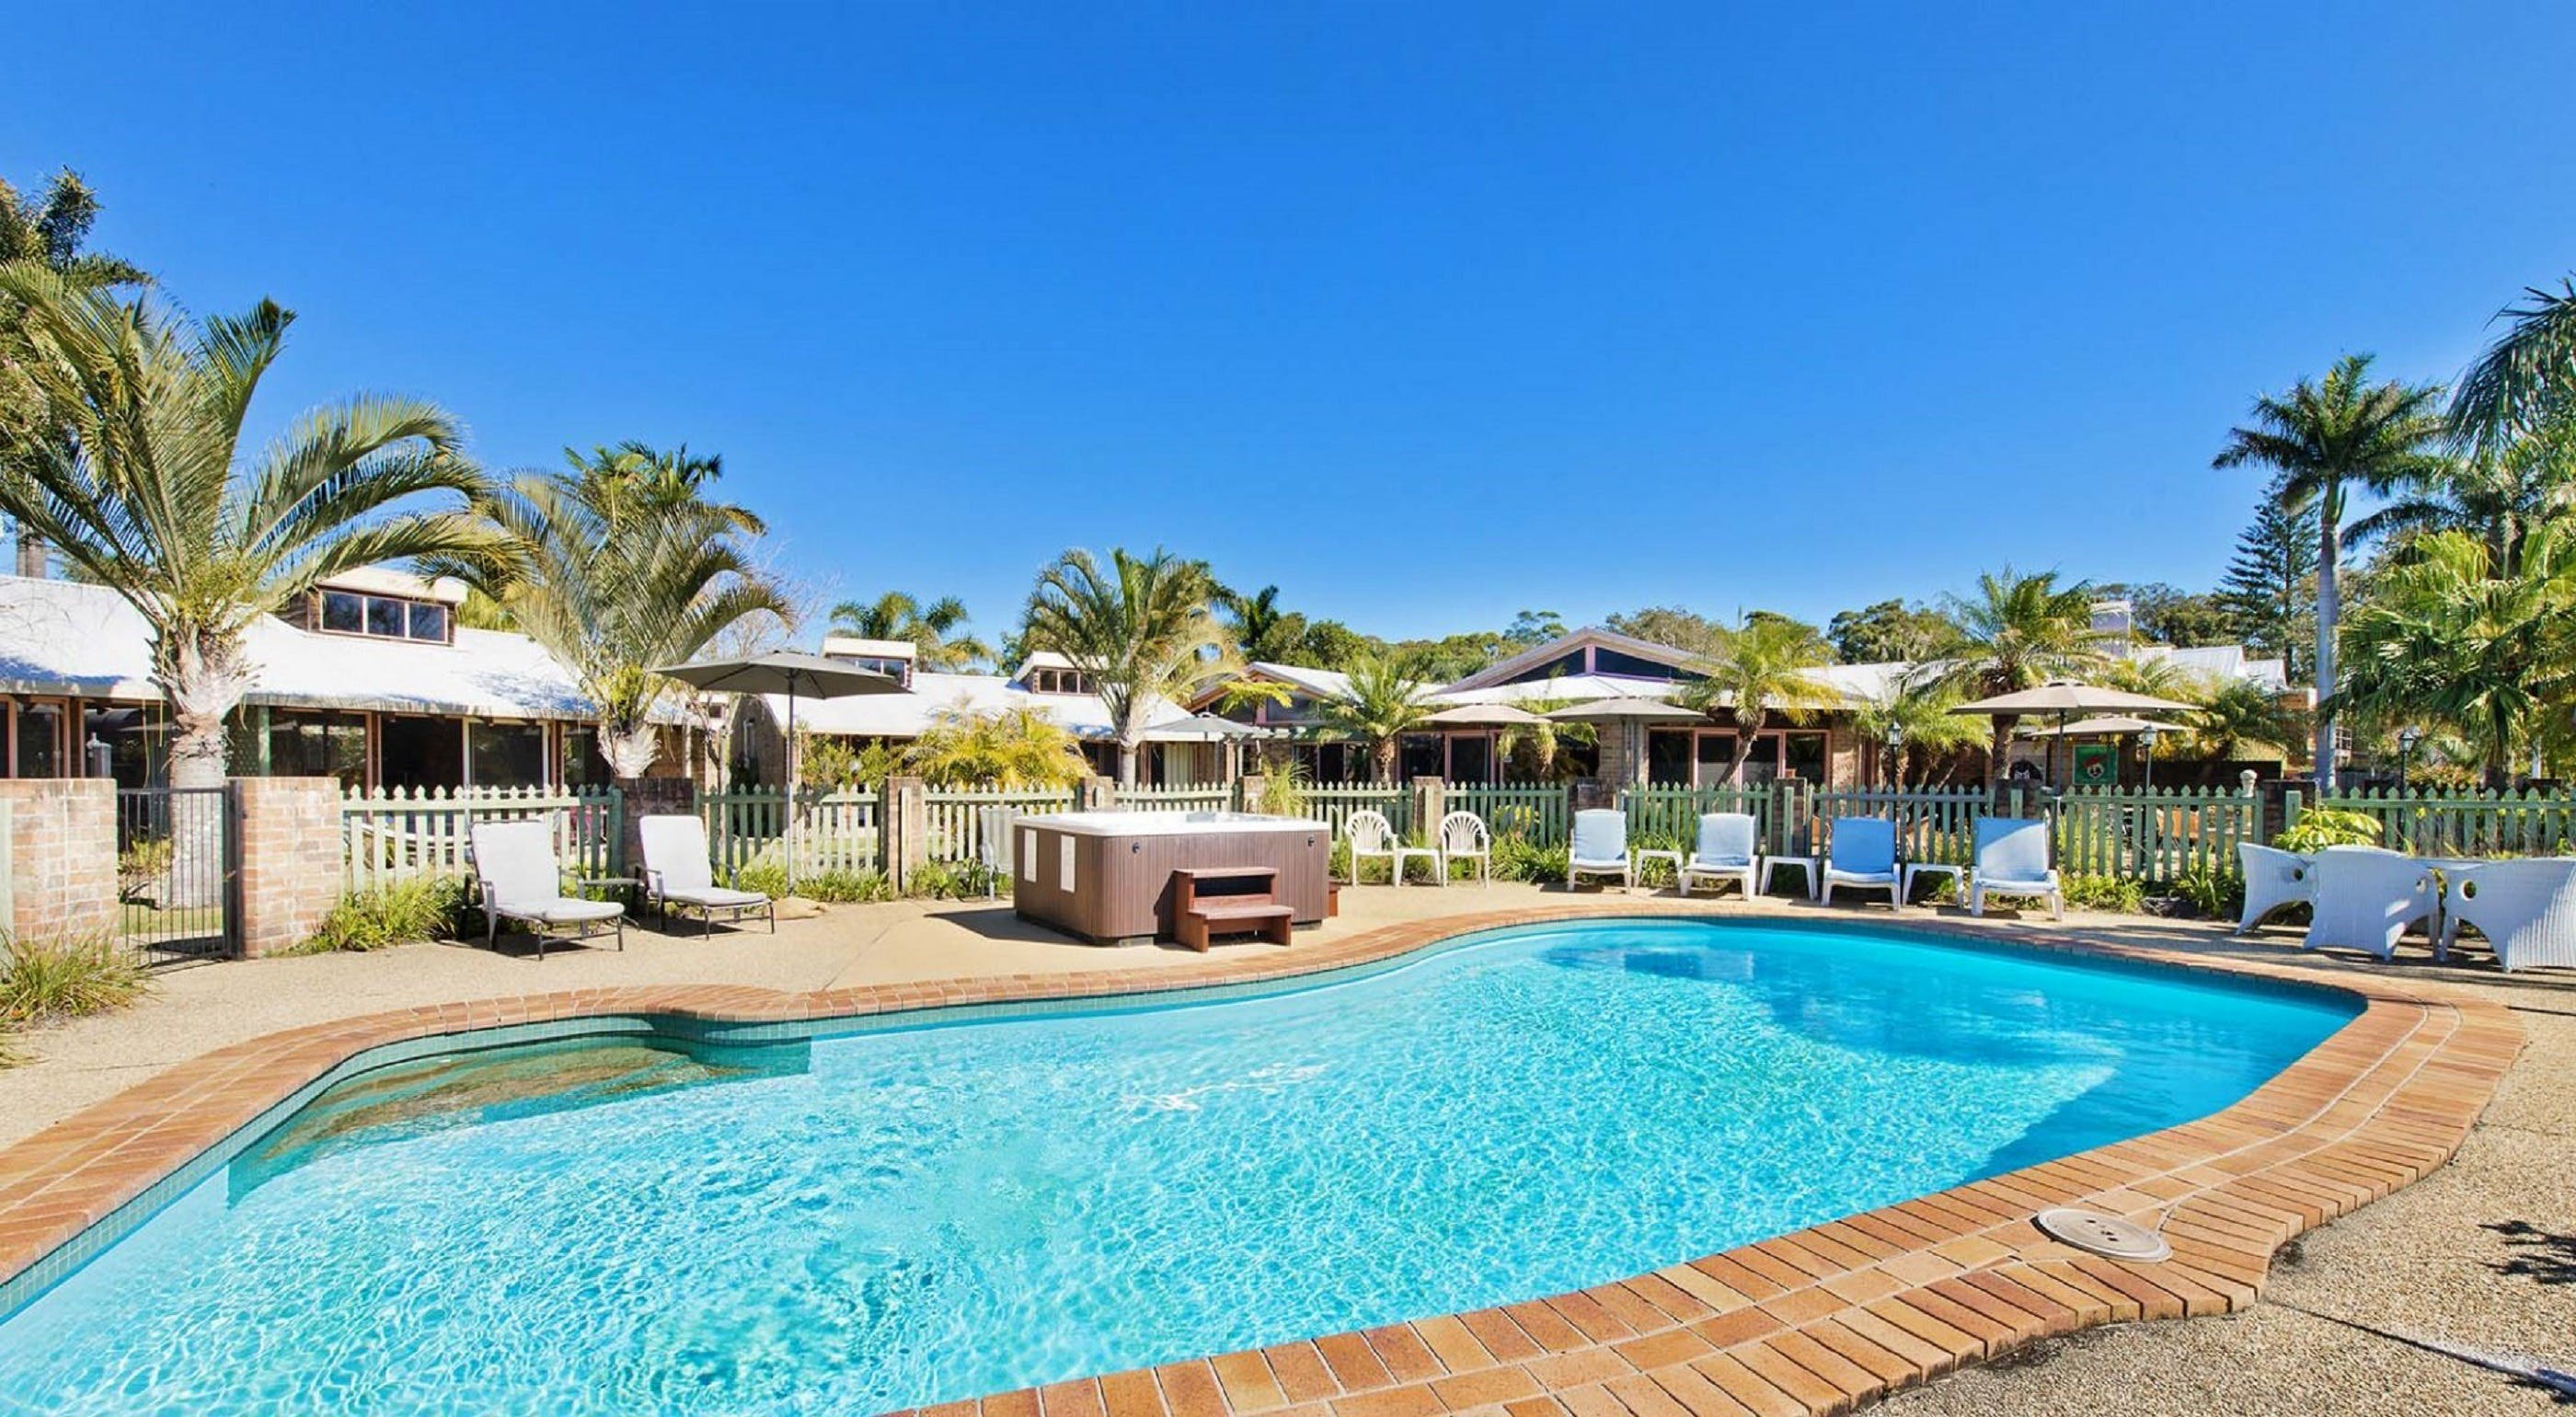 Crescent Head Resort And Conferance Centre - Accommodation Burleigh